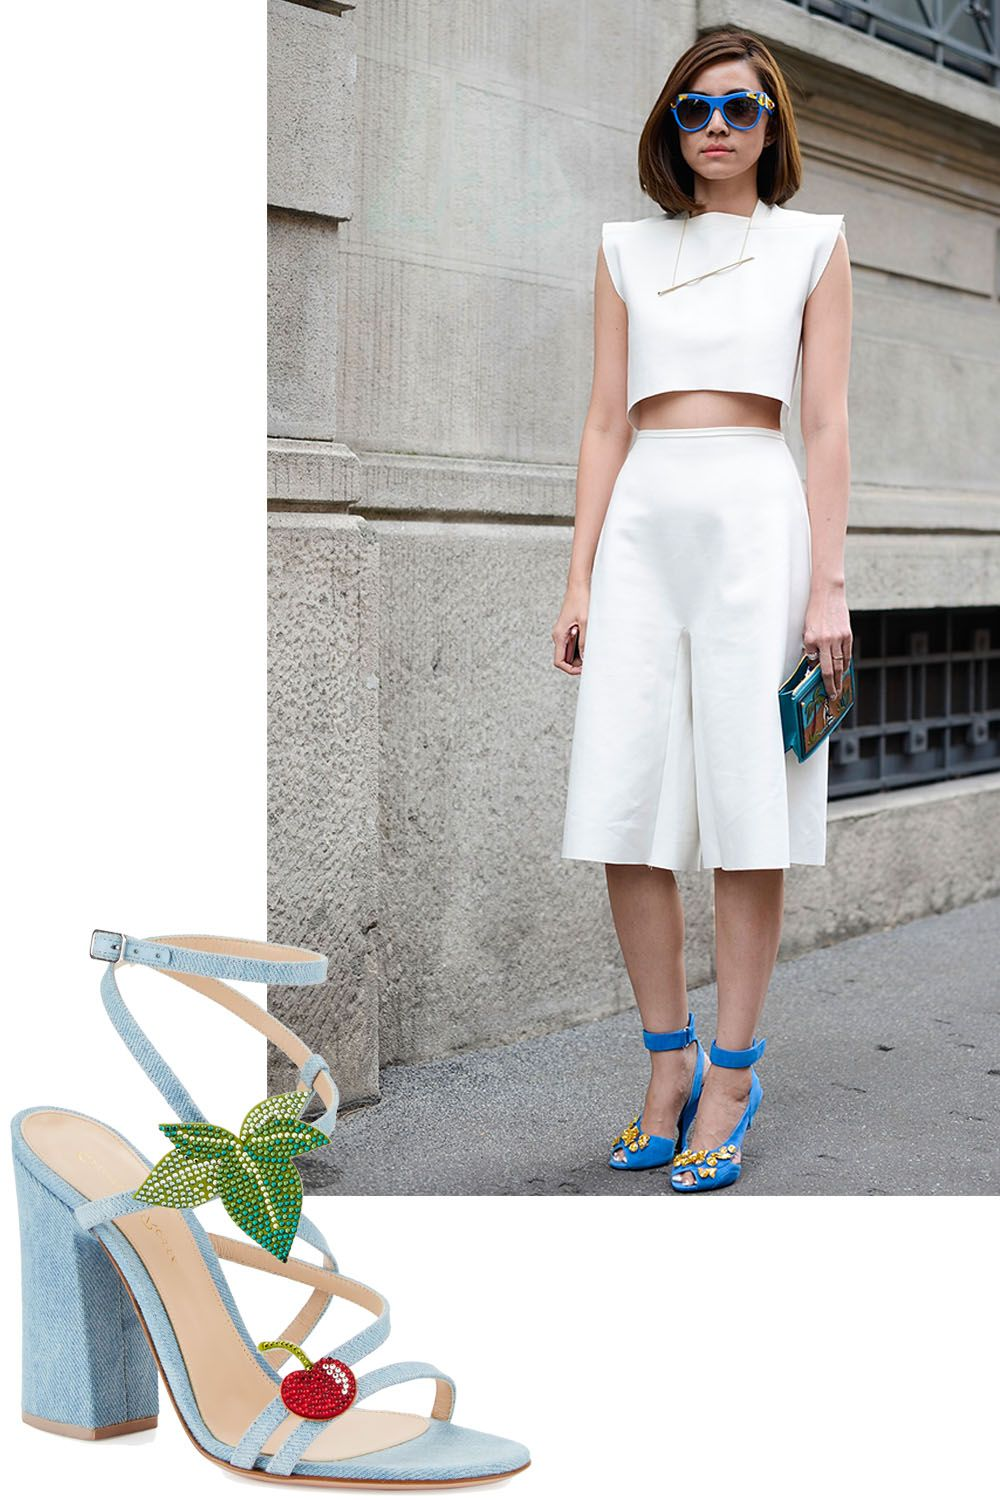 "<p>Instant update to your spring uniform. </p><p><em data-verified=""redactor"" data-redactor-tag=""em"">Gianvito Rossi sandal, $1,265, <a href=""http://www.neimanmarcus.com/Gianvito-Rossi-Cherry-Denim-Strappy-100mm-Sandal-Blue-Shoes/prod195780211_cat56520750__/p.prod?icid=home0b_SpringShoes_020717&searchType=EndecaDrivenCat&rte=%252Fcategory.jsp%253FitemId%253Dcat56520750%2526pageSize%253D117%2526No%253D0%2526refinements%253D&eItemId=prod195780211&cmCat=product"" data-tracking-id=""recirc-text-link"">neimanmarcus.com</a>.</em><br></p>"